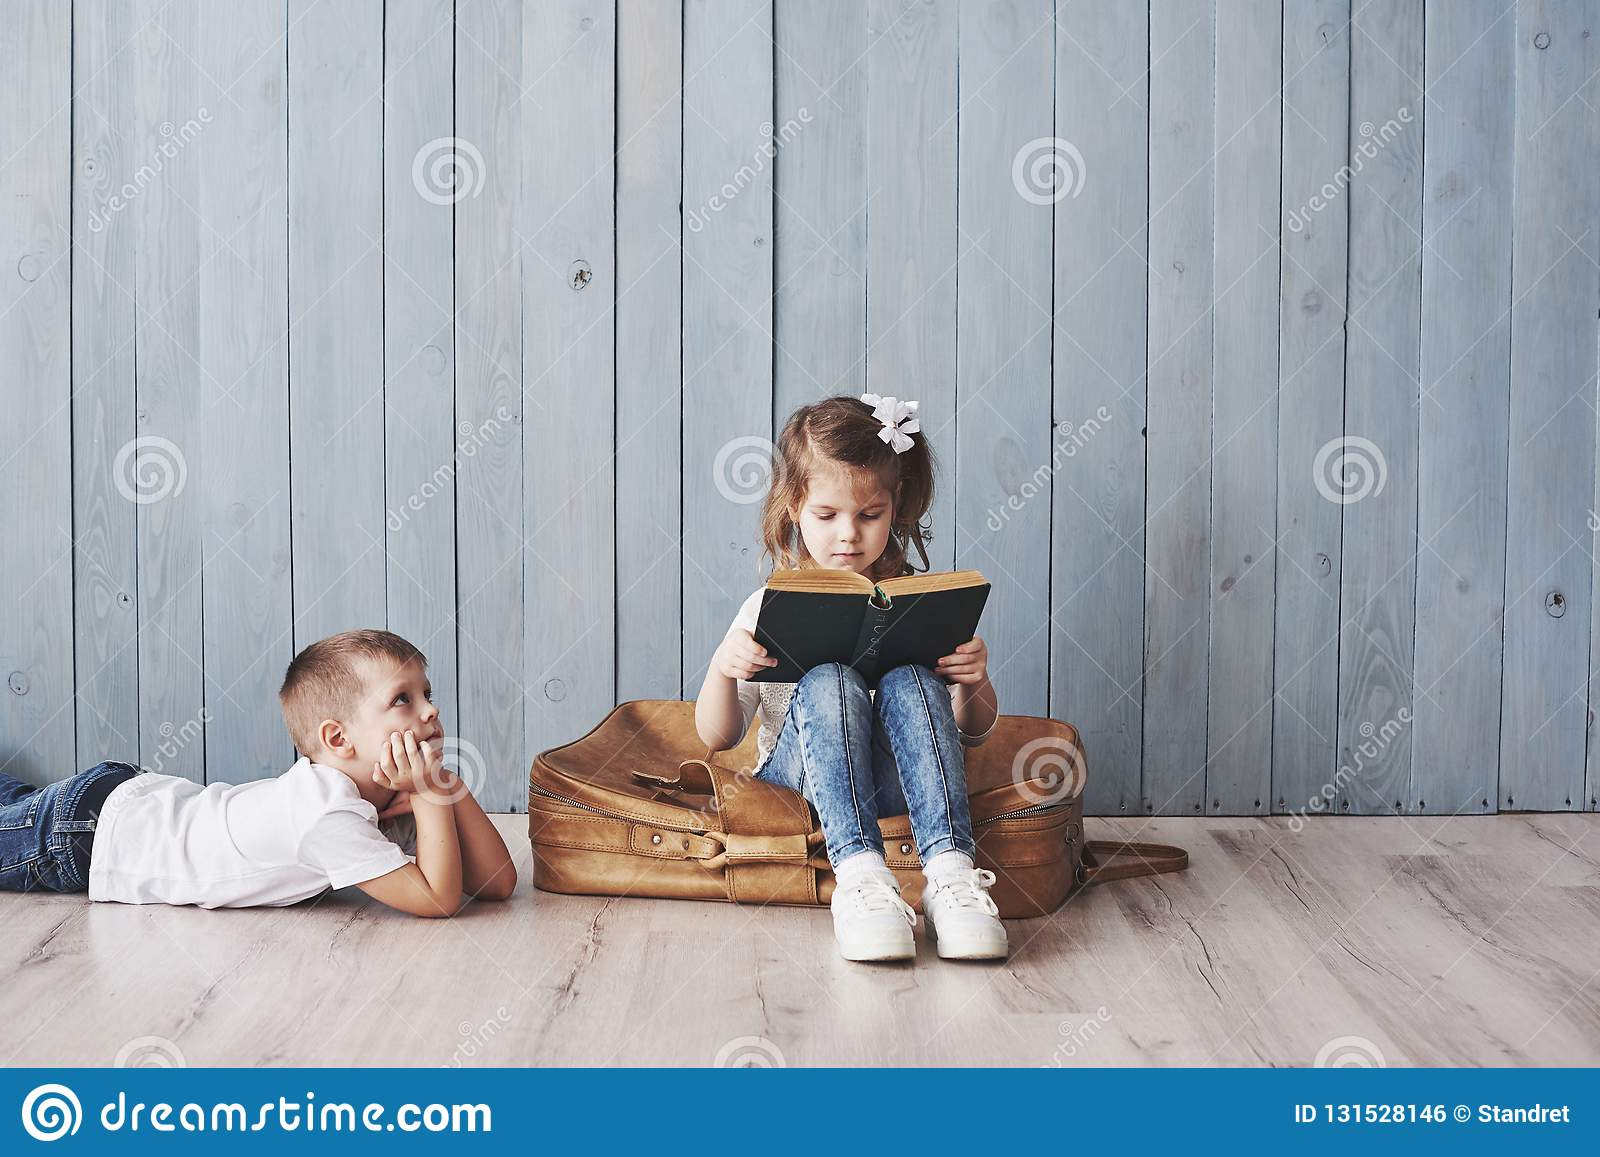 Ready to big travel. Happy little girl and boy reading interesting book carrying a big briefcase and smiling. Travel